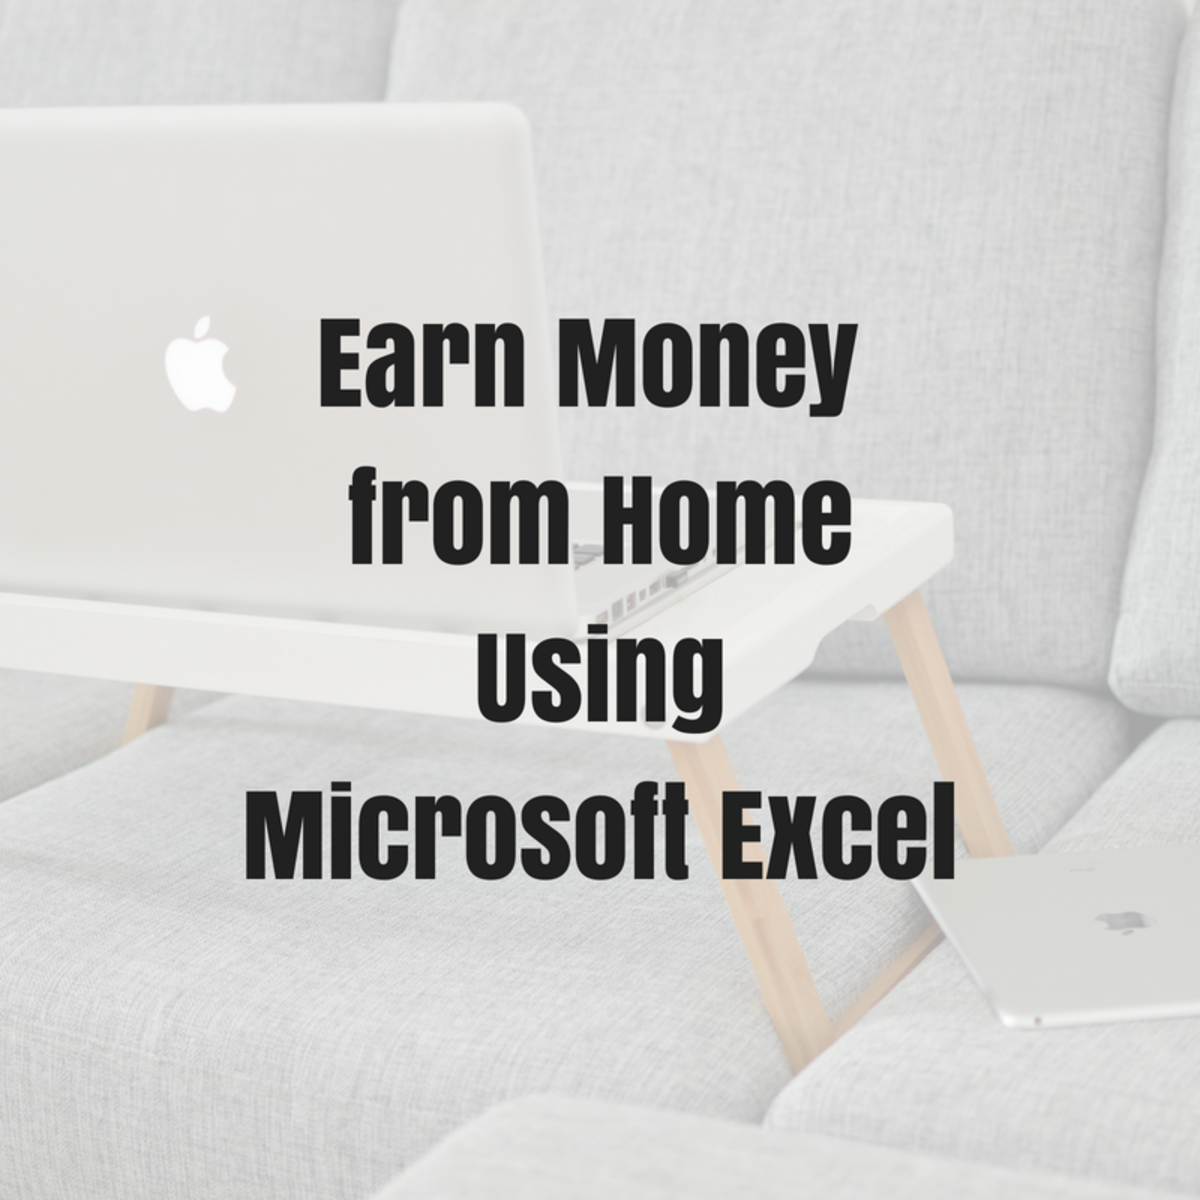 How to Make Money at Home Using Microsoft Excel